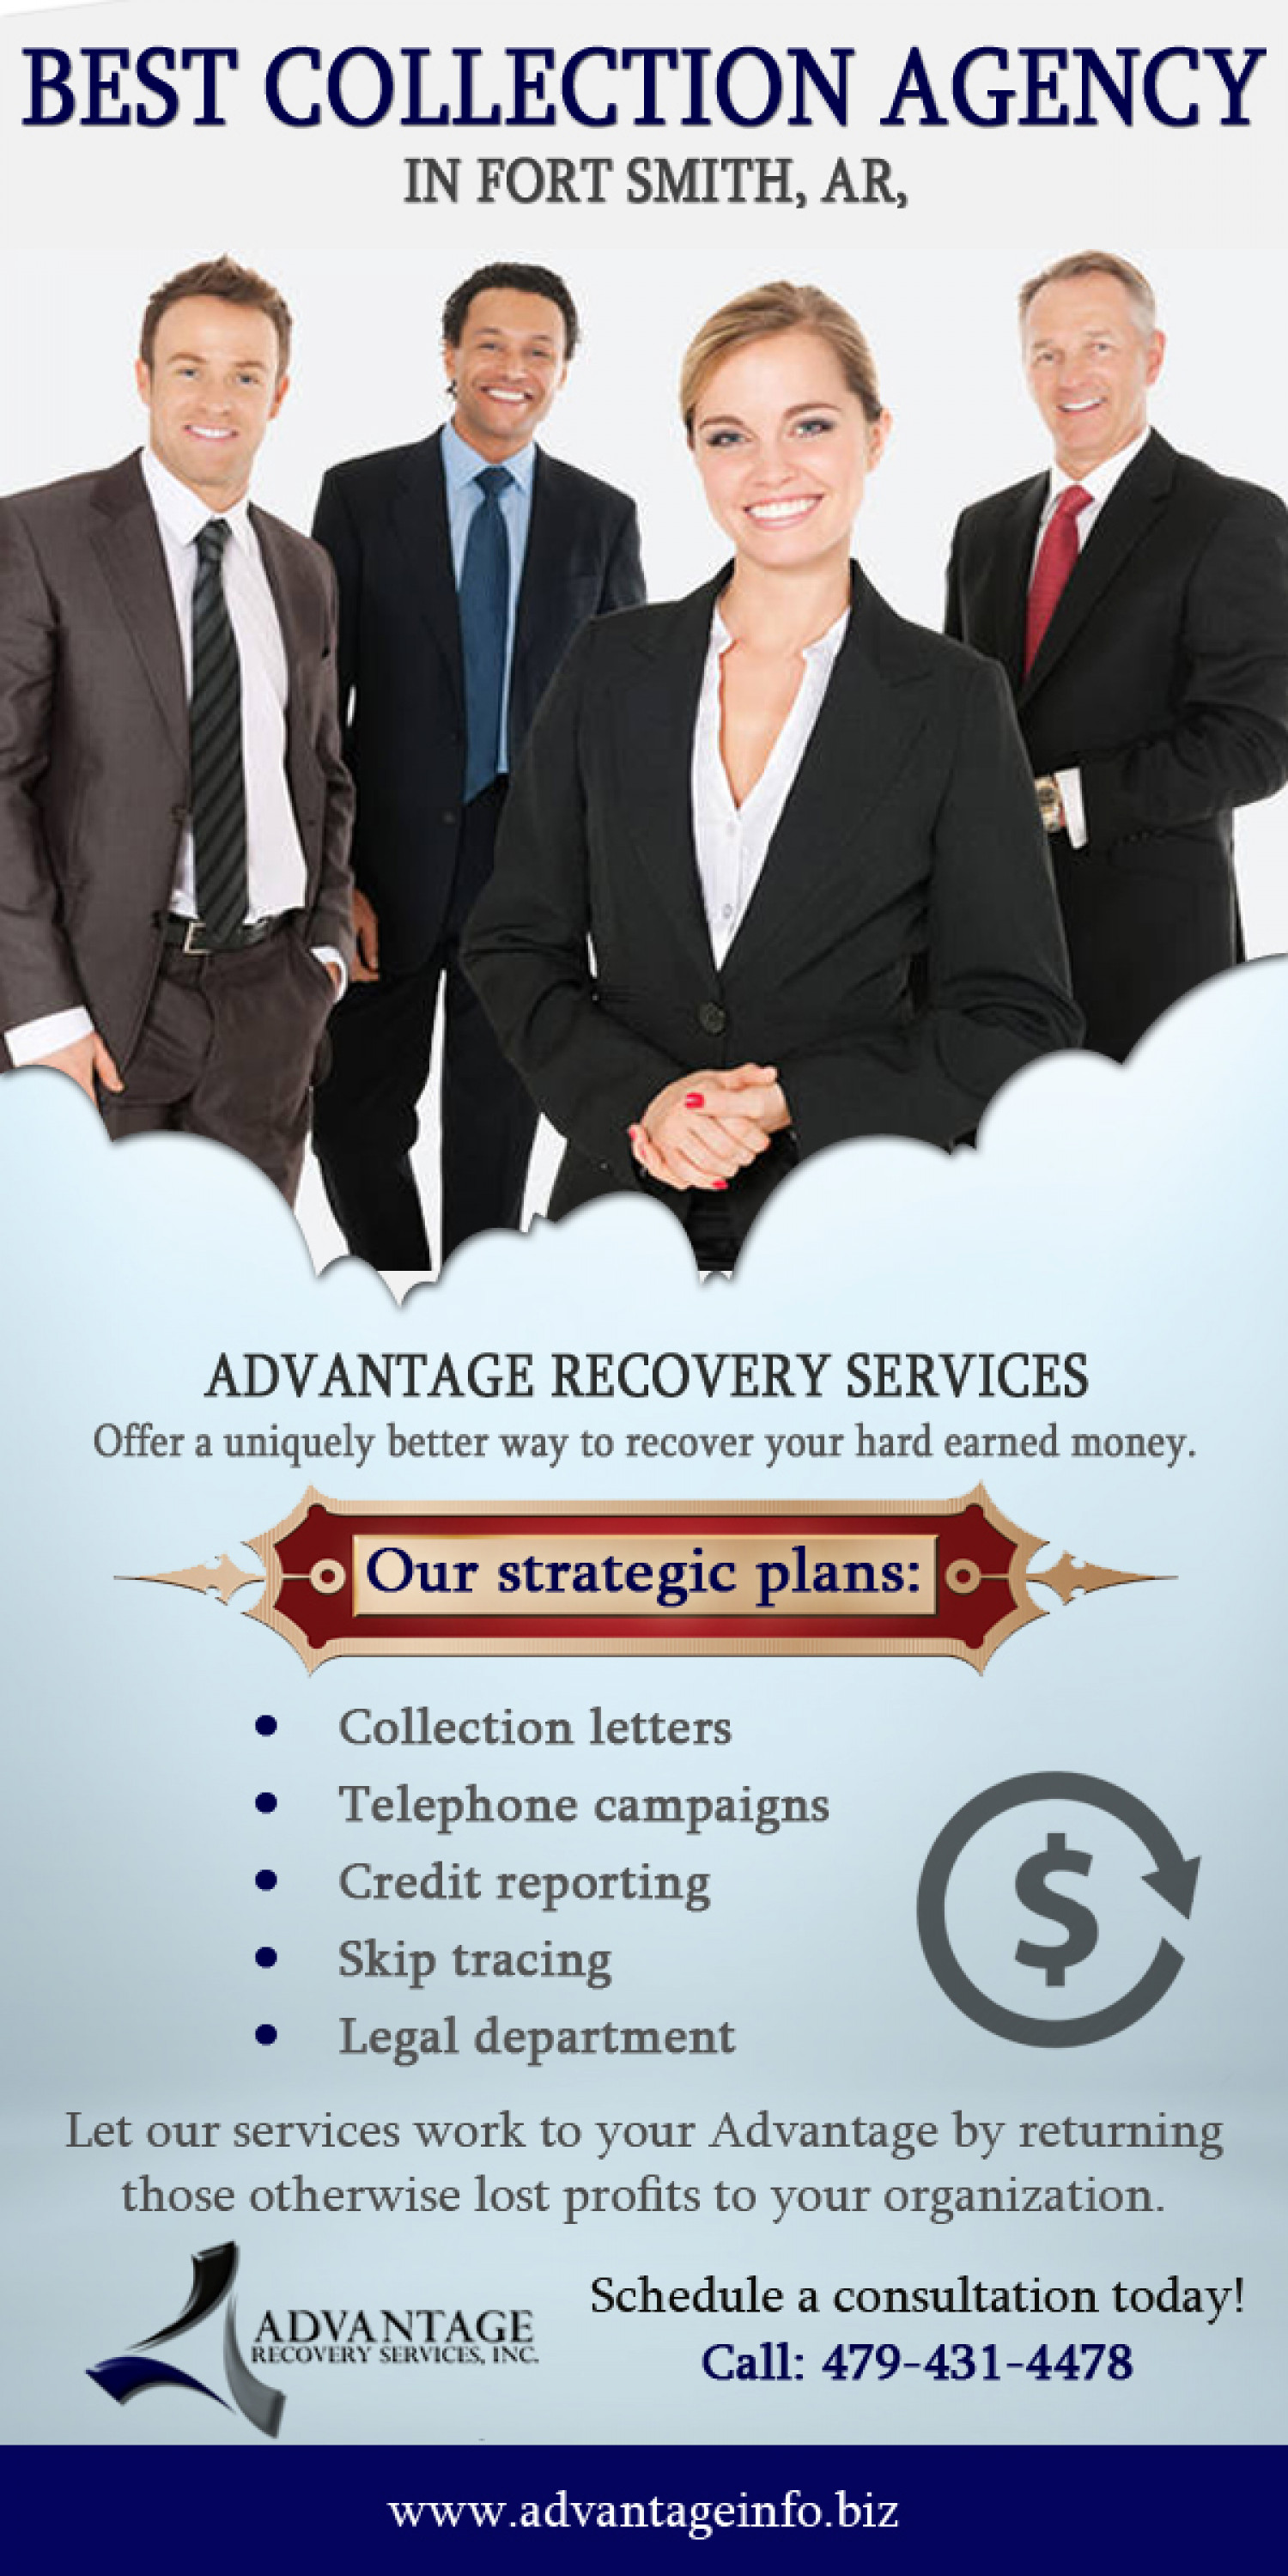 Recover Lost Profits With The Best Collection Agency Infographic